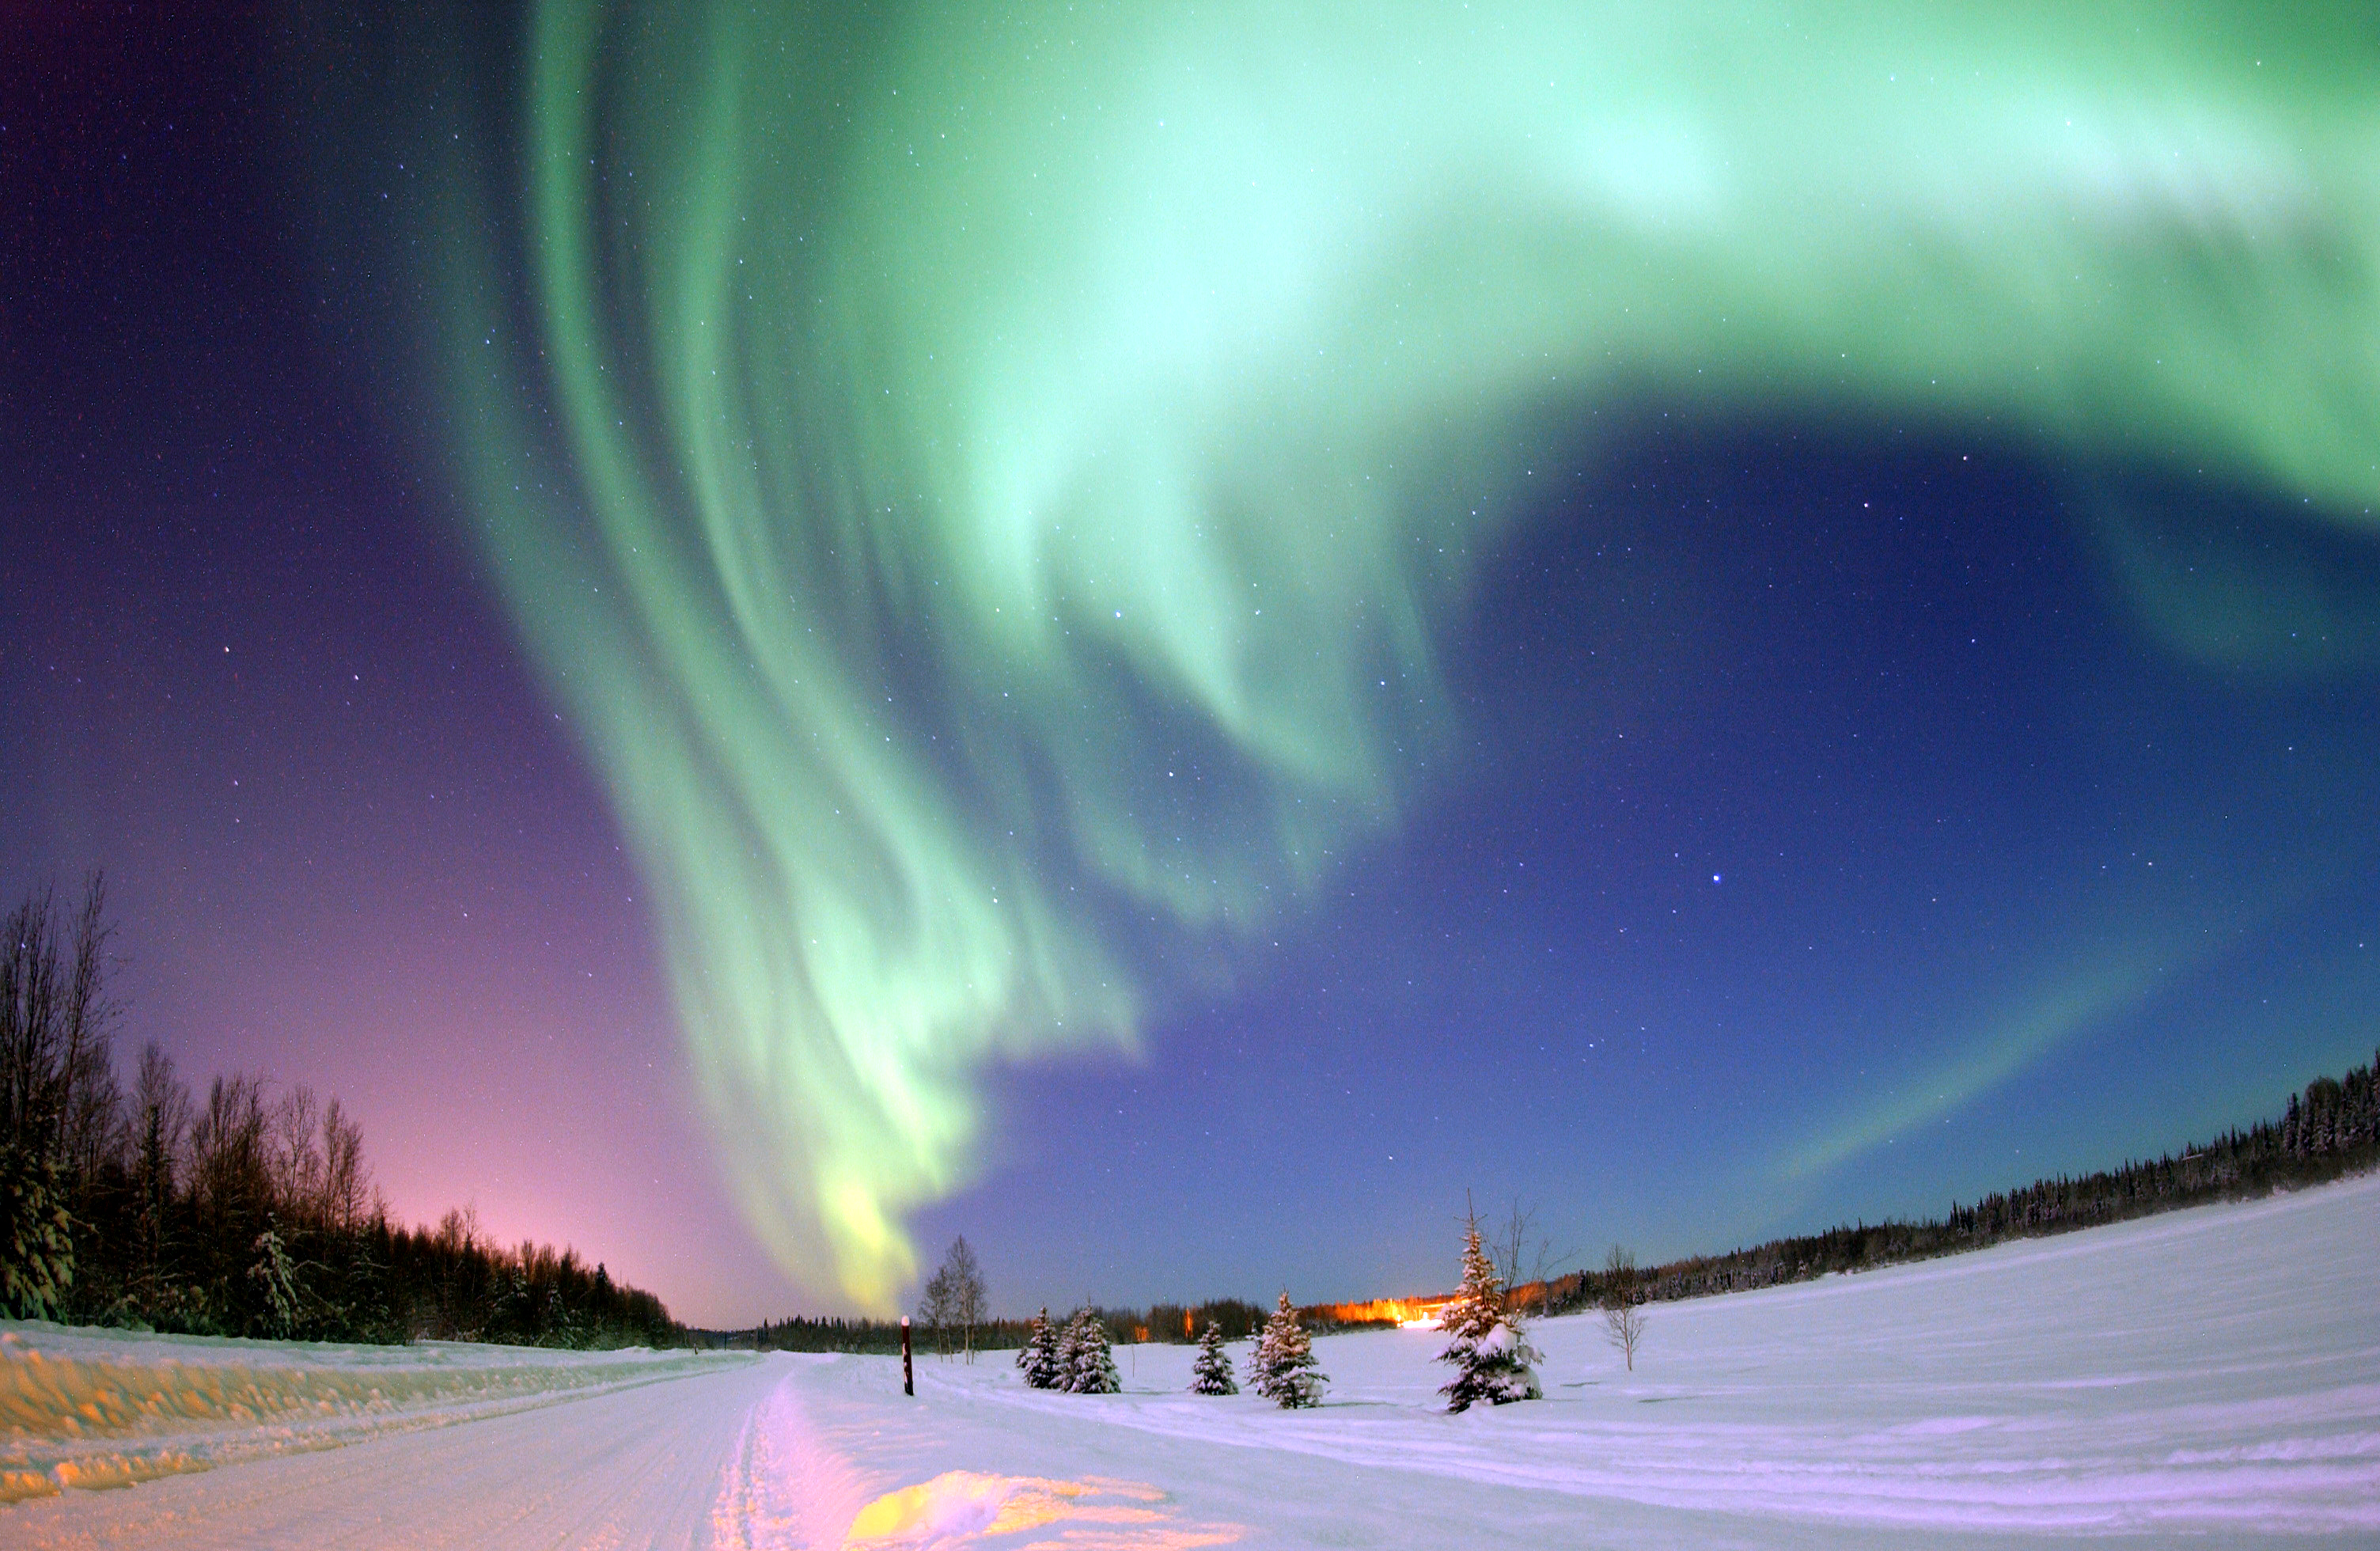 APOD: 2007 April 9 - Aurora Over Alaska